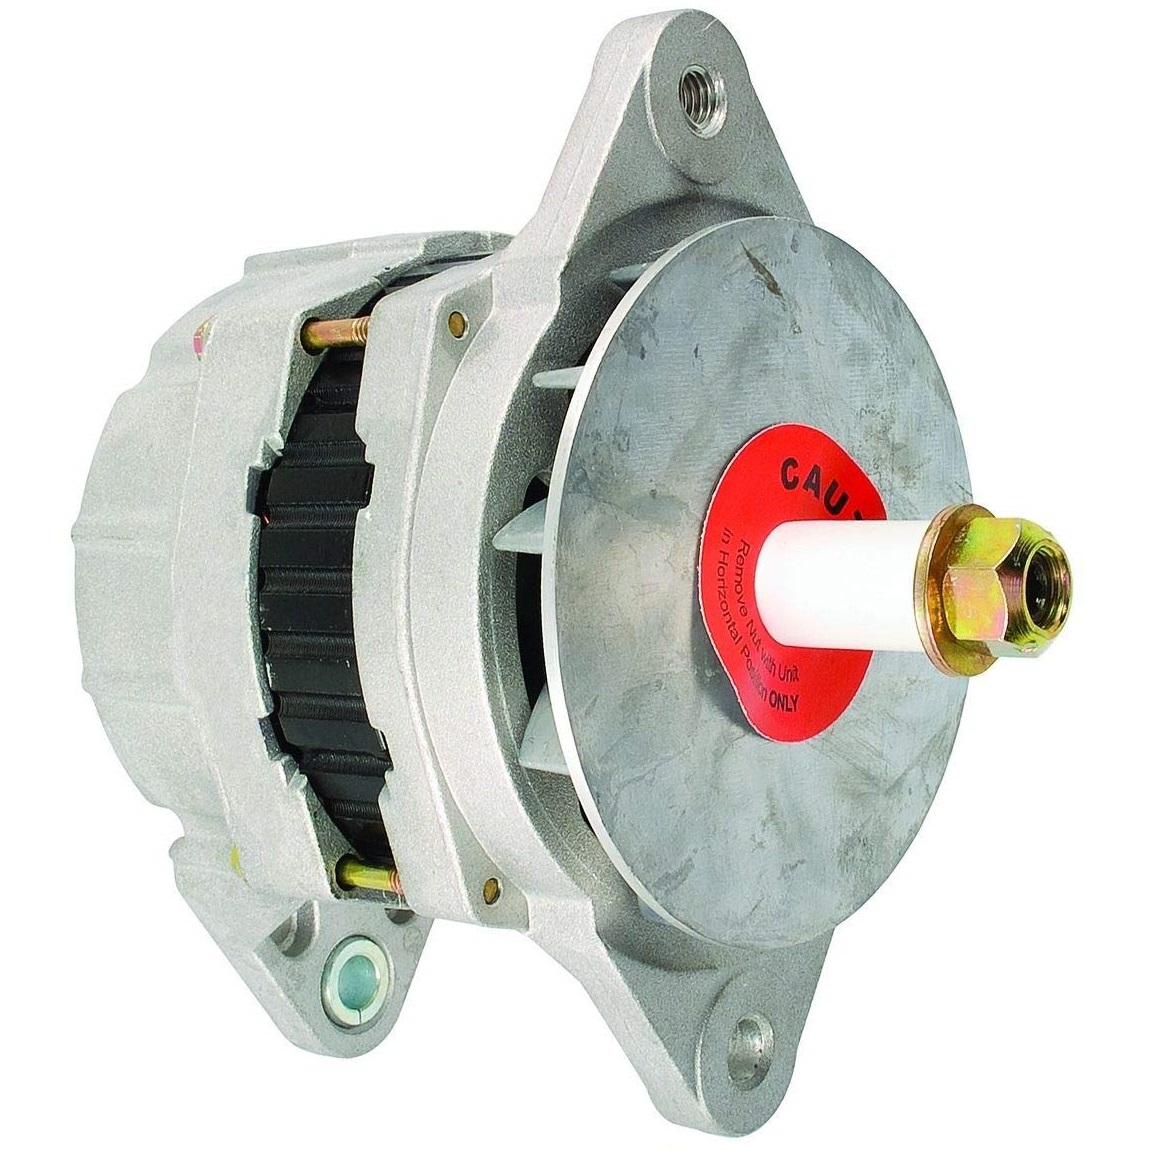 Hyundai R210-5 excavator Alternator 3730093000 3730093C00